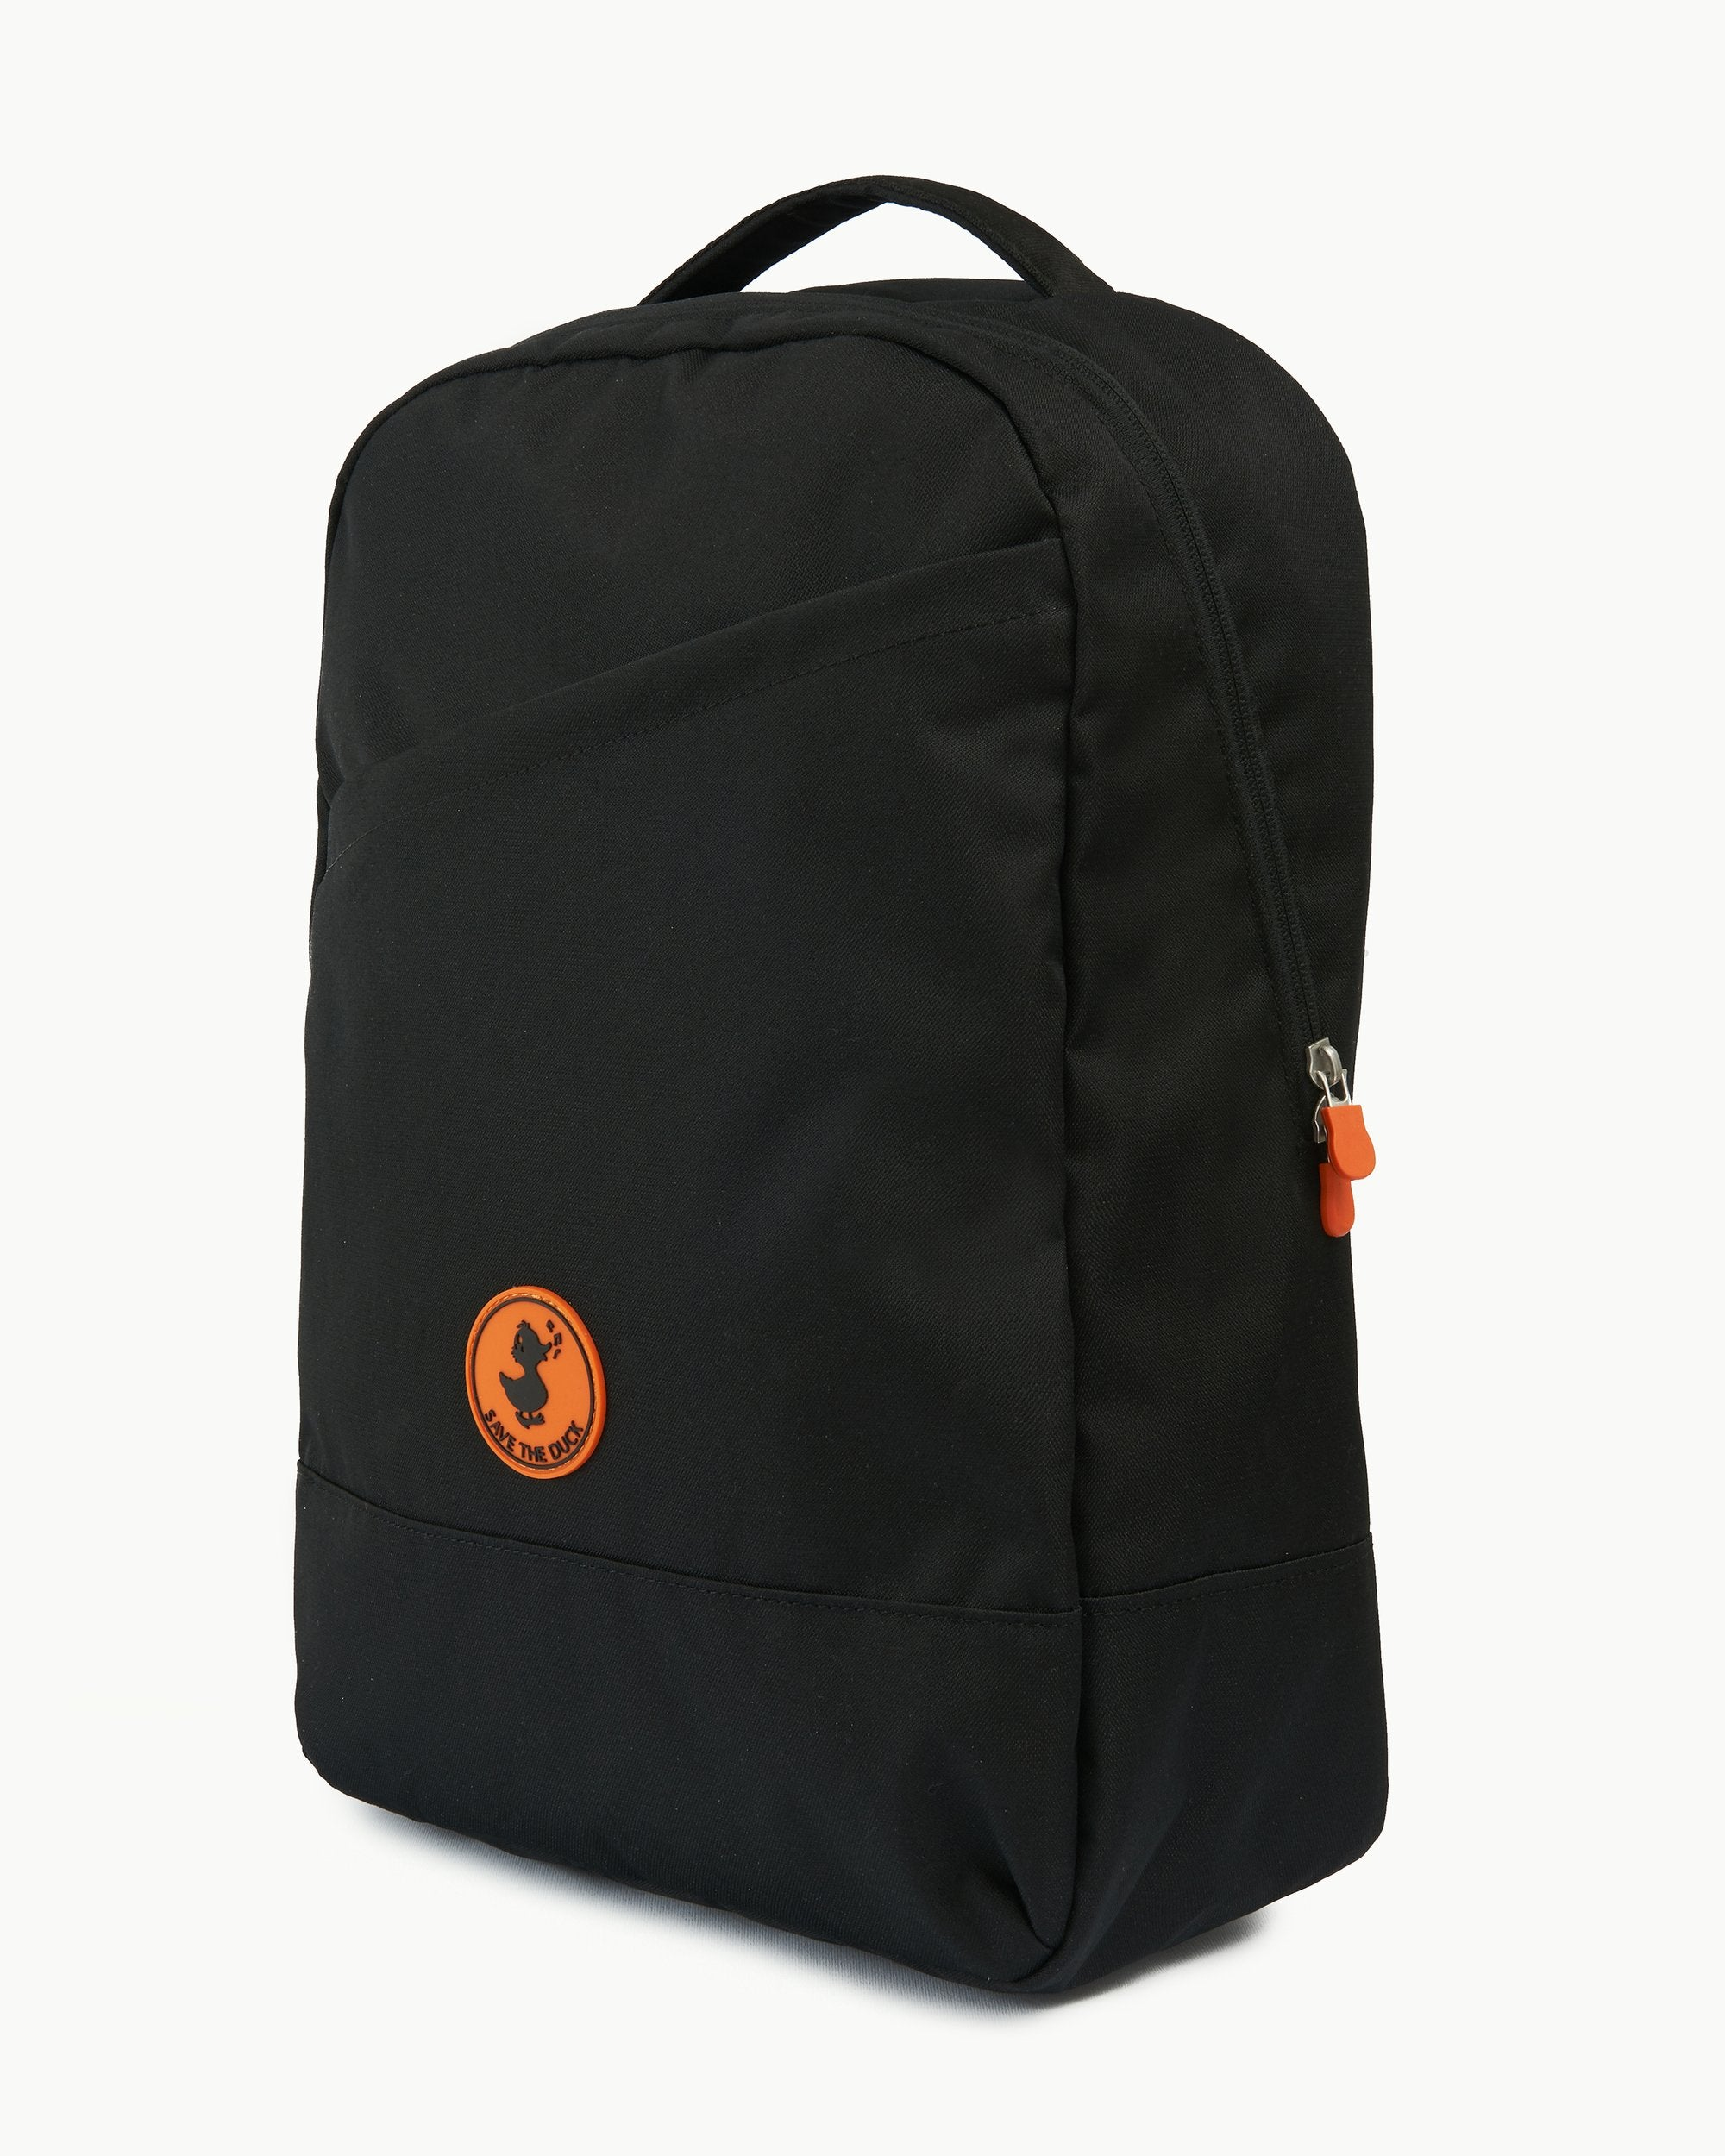 CRUELTY FREE BACKPACK MADE FROM RECYCLED PLASTIC BOTTLES BLACK